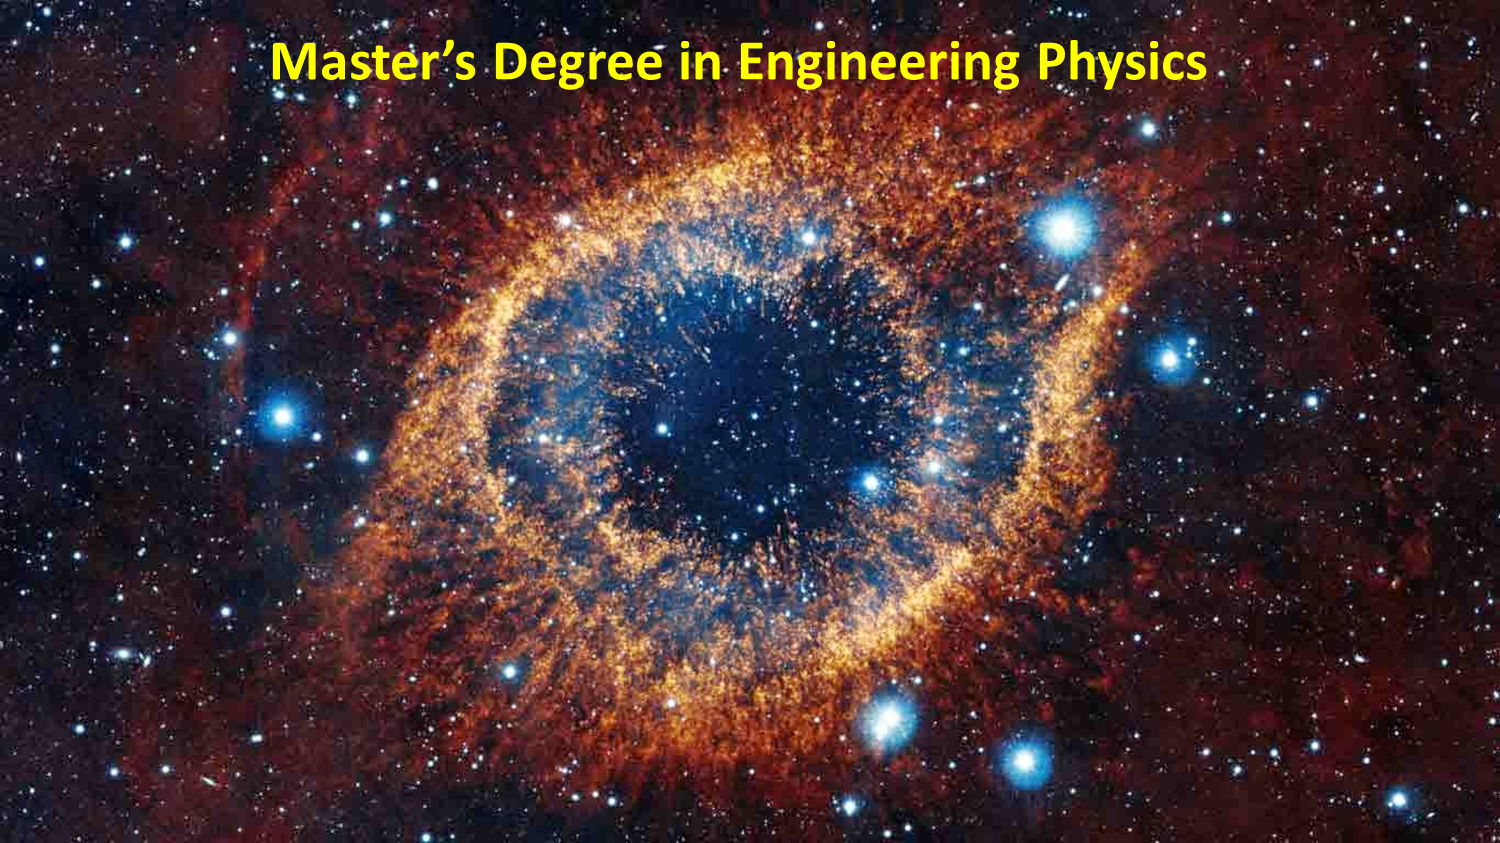 Master's degree in Engineering Physics, (open link in a new window)